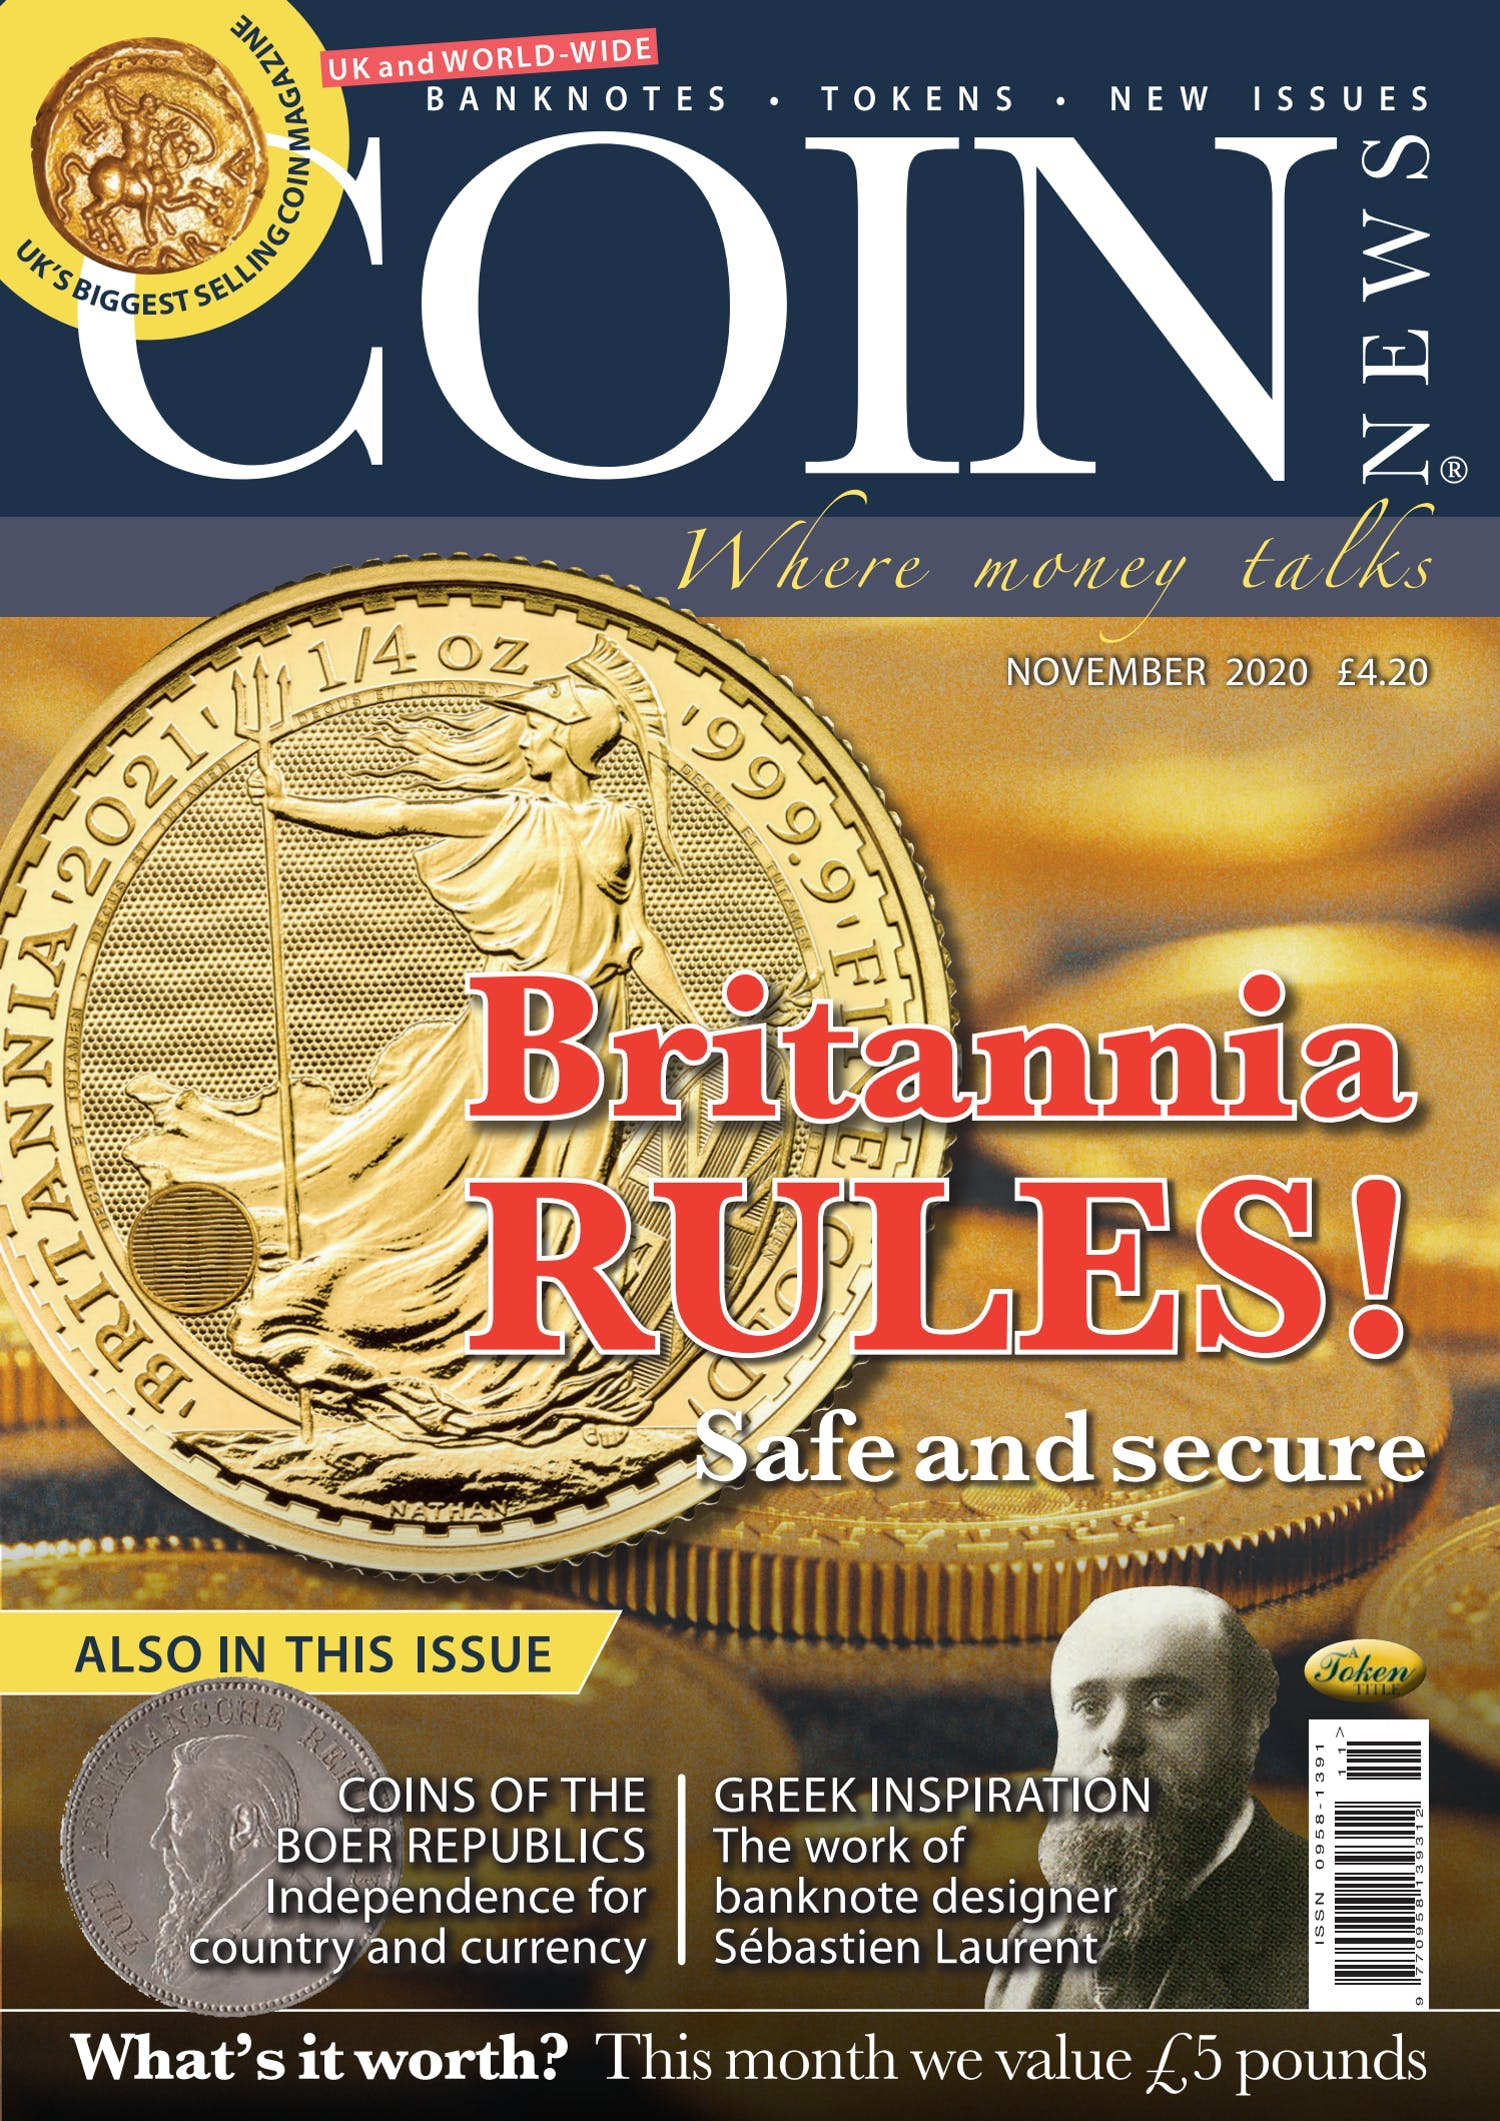 The front cover of Coin News, November 2020 - Volume 57, Number 11